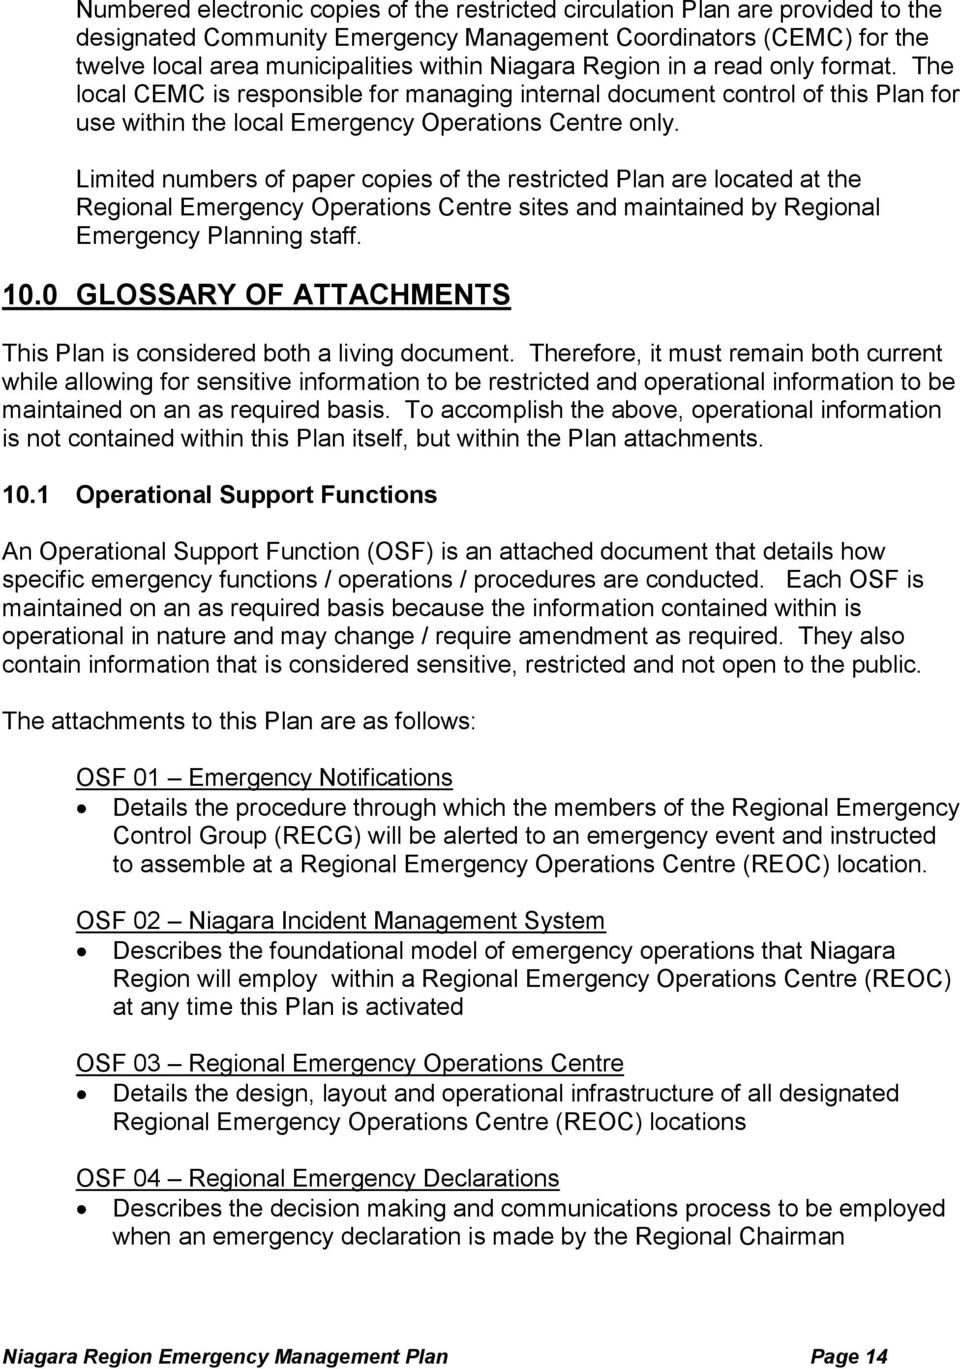 Limited numbers of paper copies of the restricted Plan are located at the Regional Emergency Operations Centre sites and maintained by Regional Emergency Planning staff. 10.